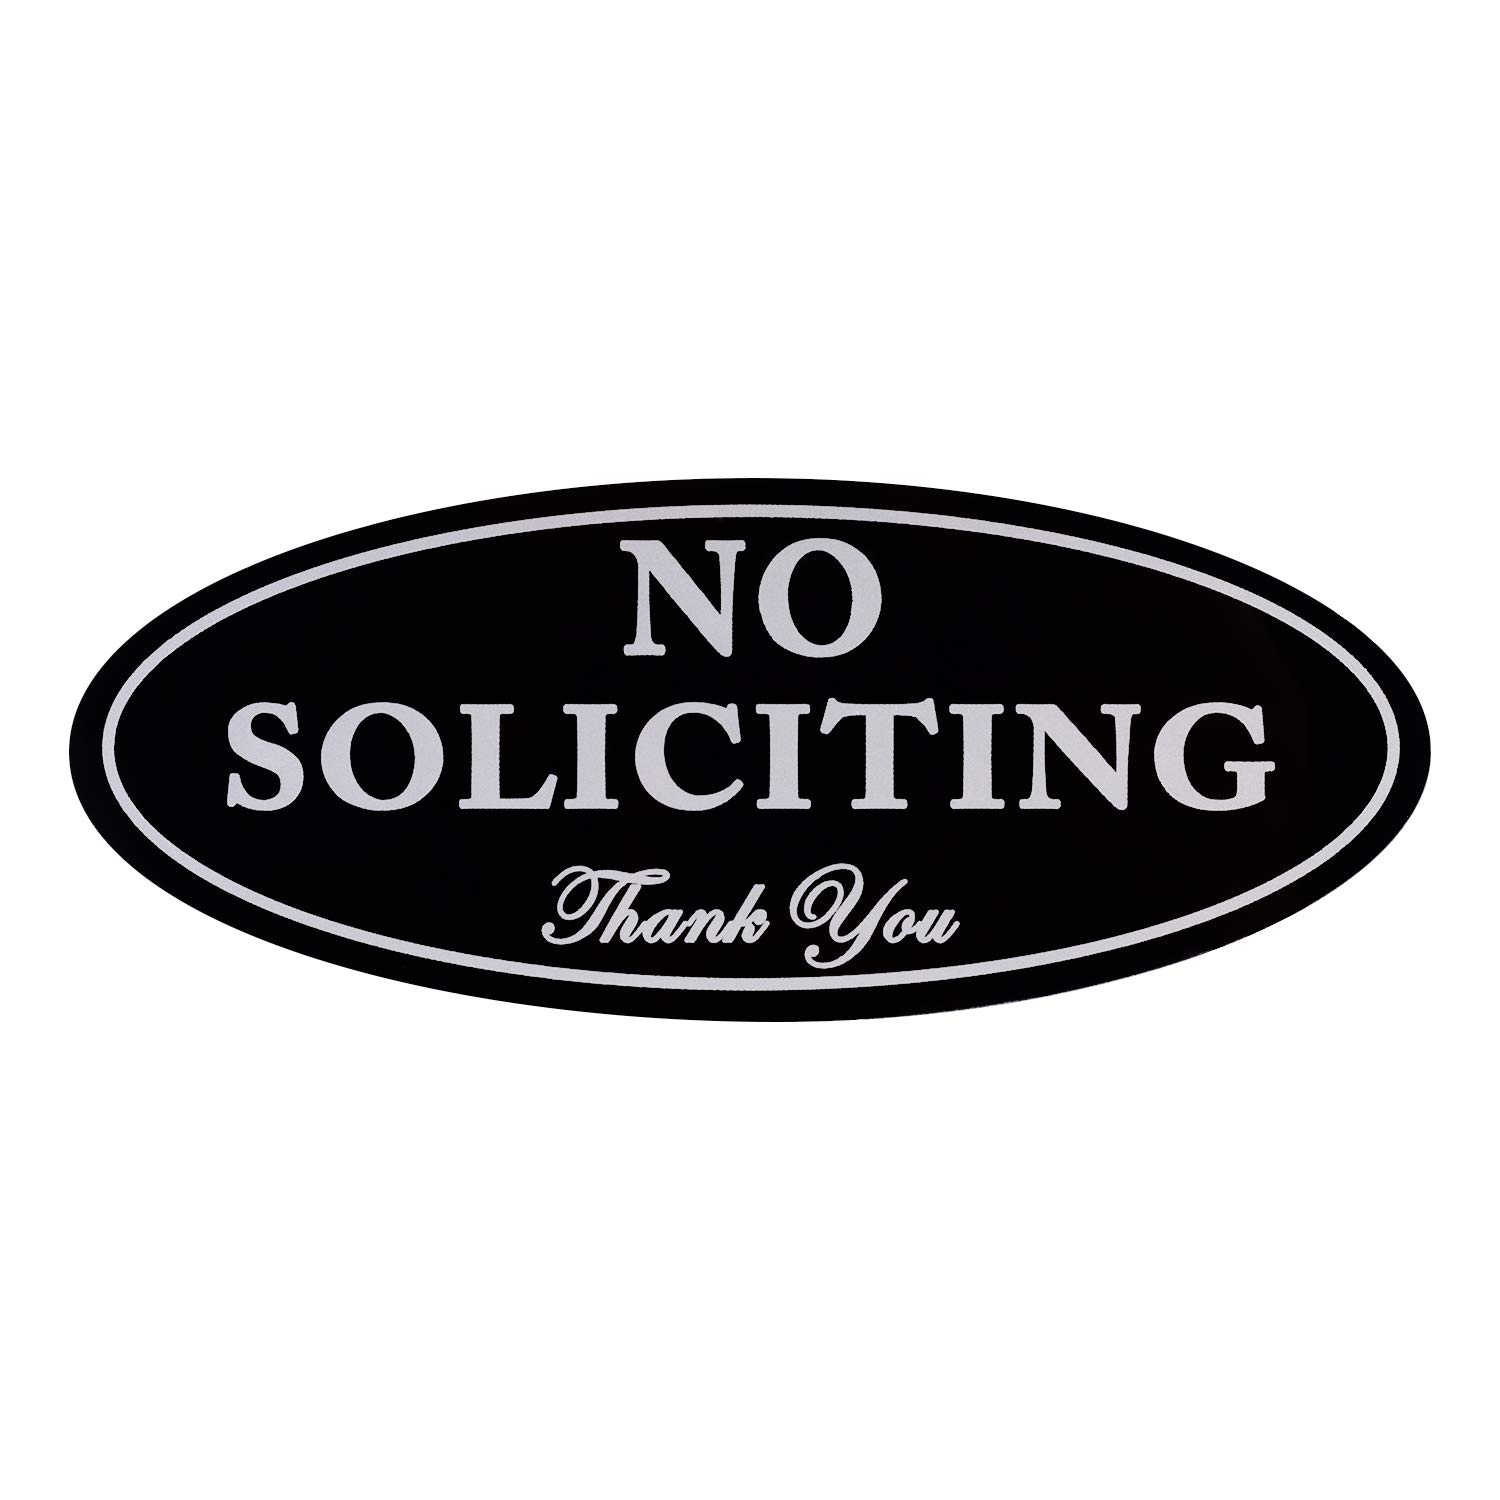 "No Soliciting Sign with Magnets on The Back, Black, 2.8"" x 7"", Keeps Unwanted Visitors Away, No Deforming, Residue Free Adhesive Included"